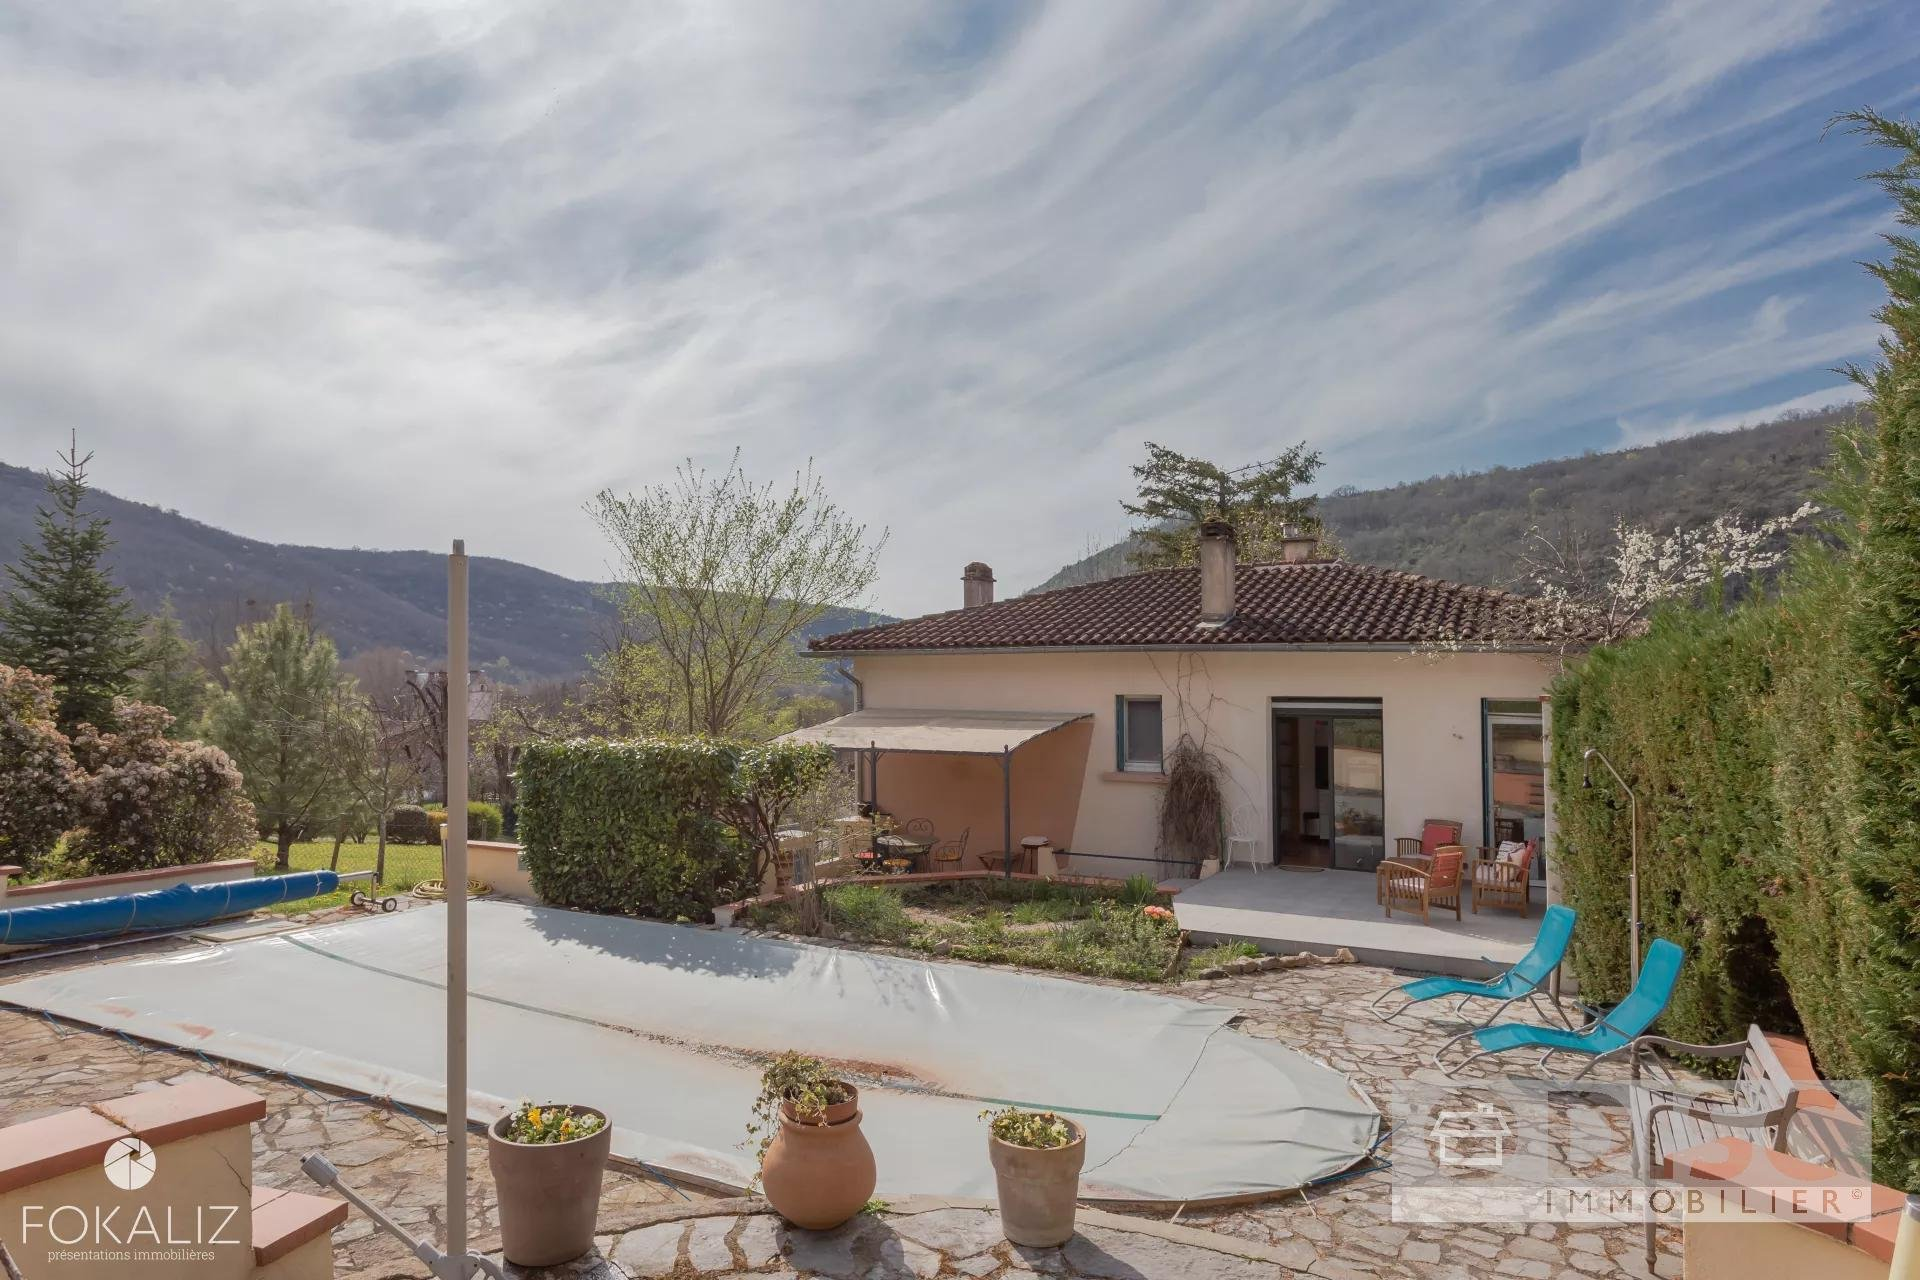 Village house with swimming pool and large garden.